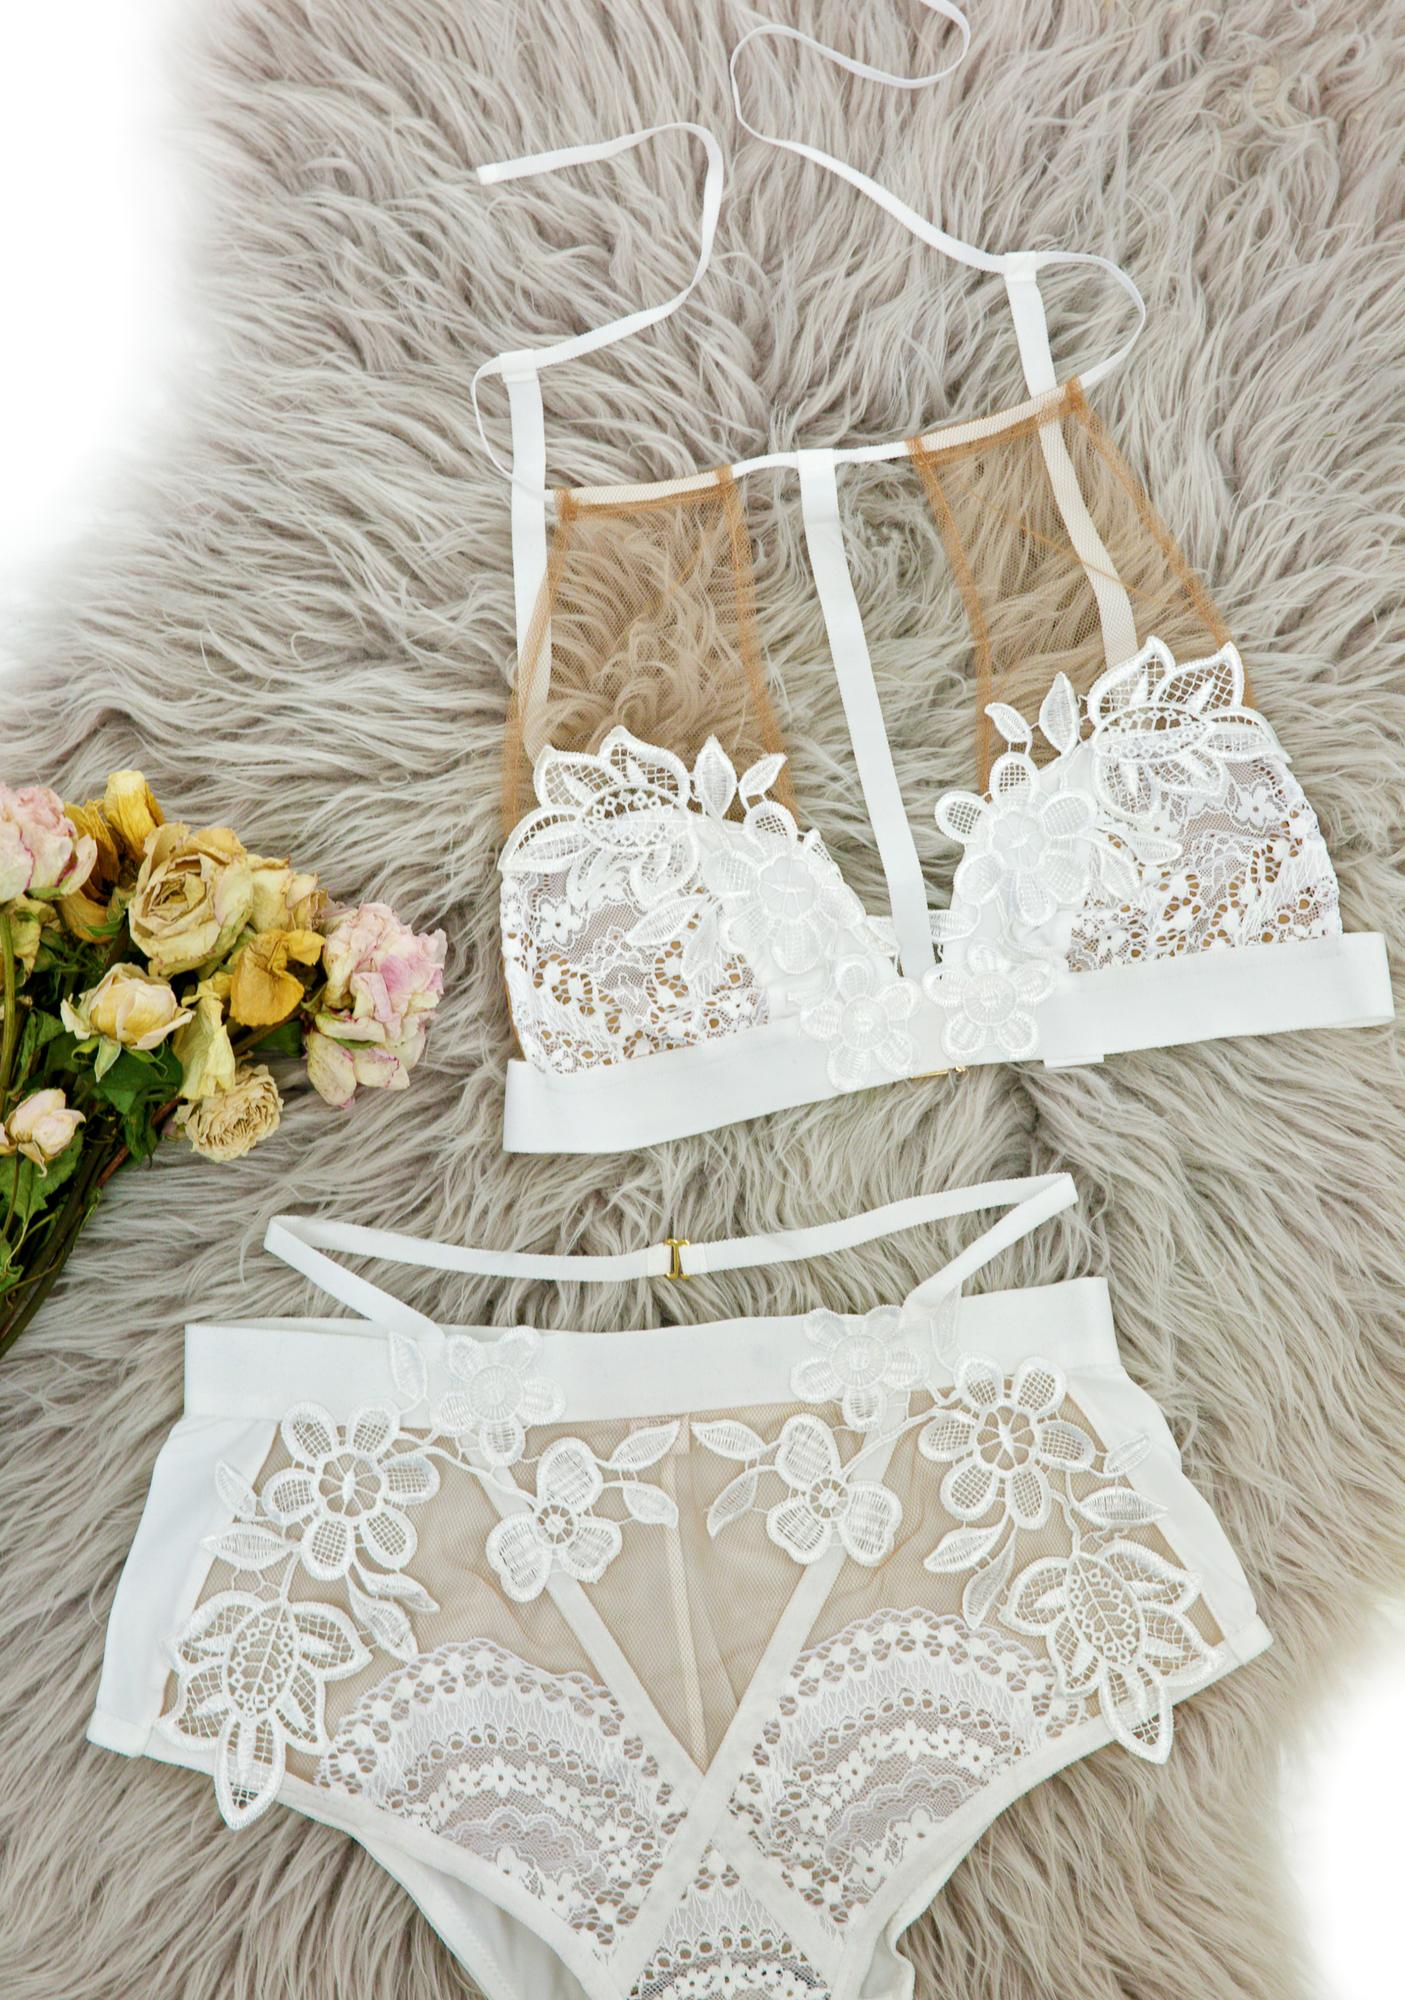 For Love & Lemons Alabaster Lucia Halter Bralette